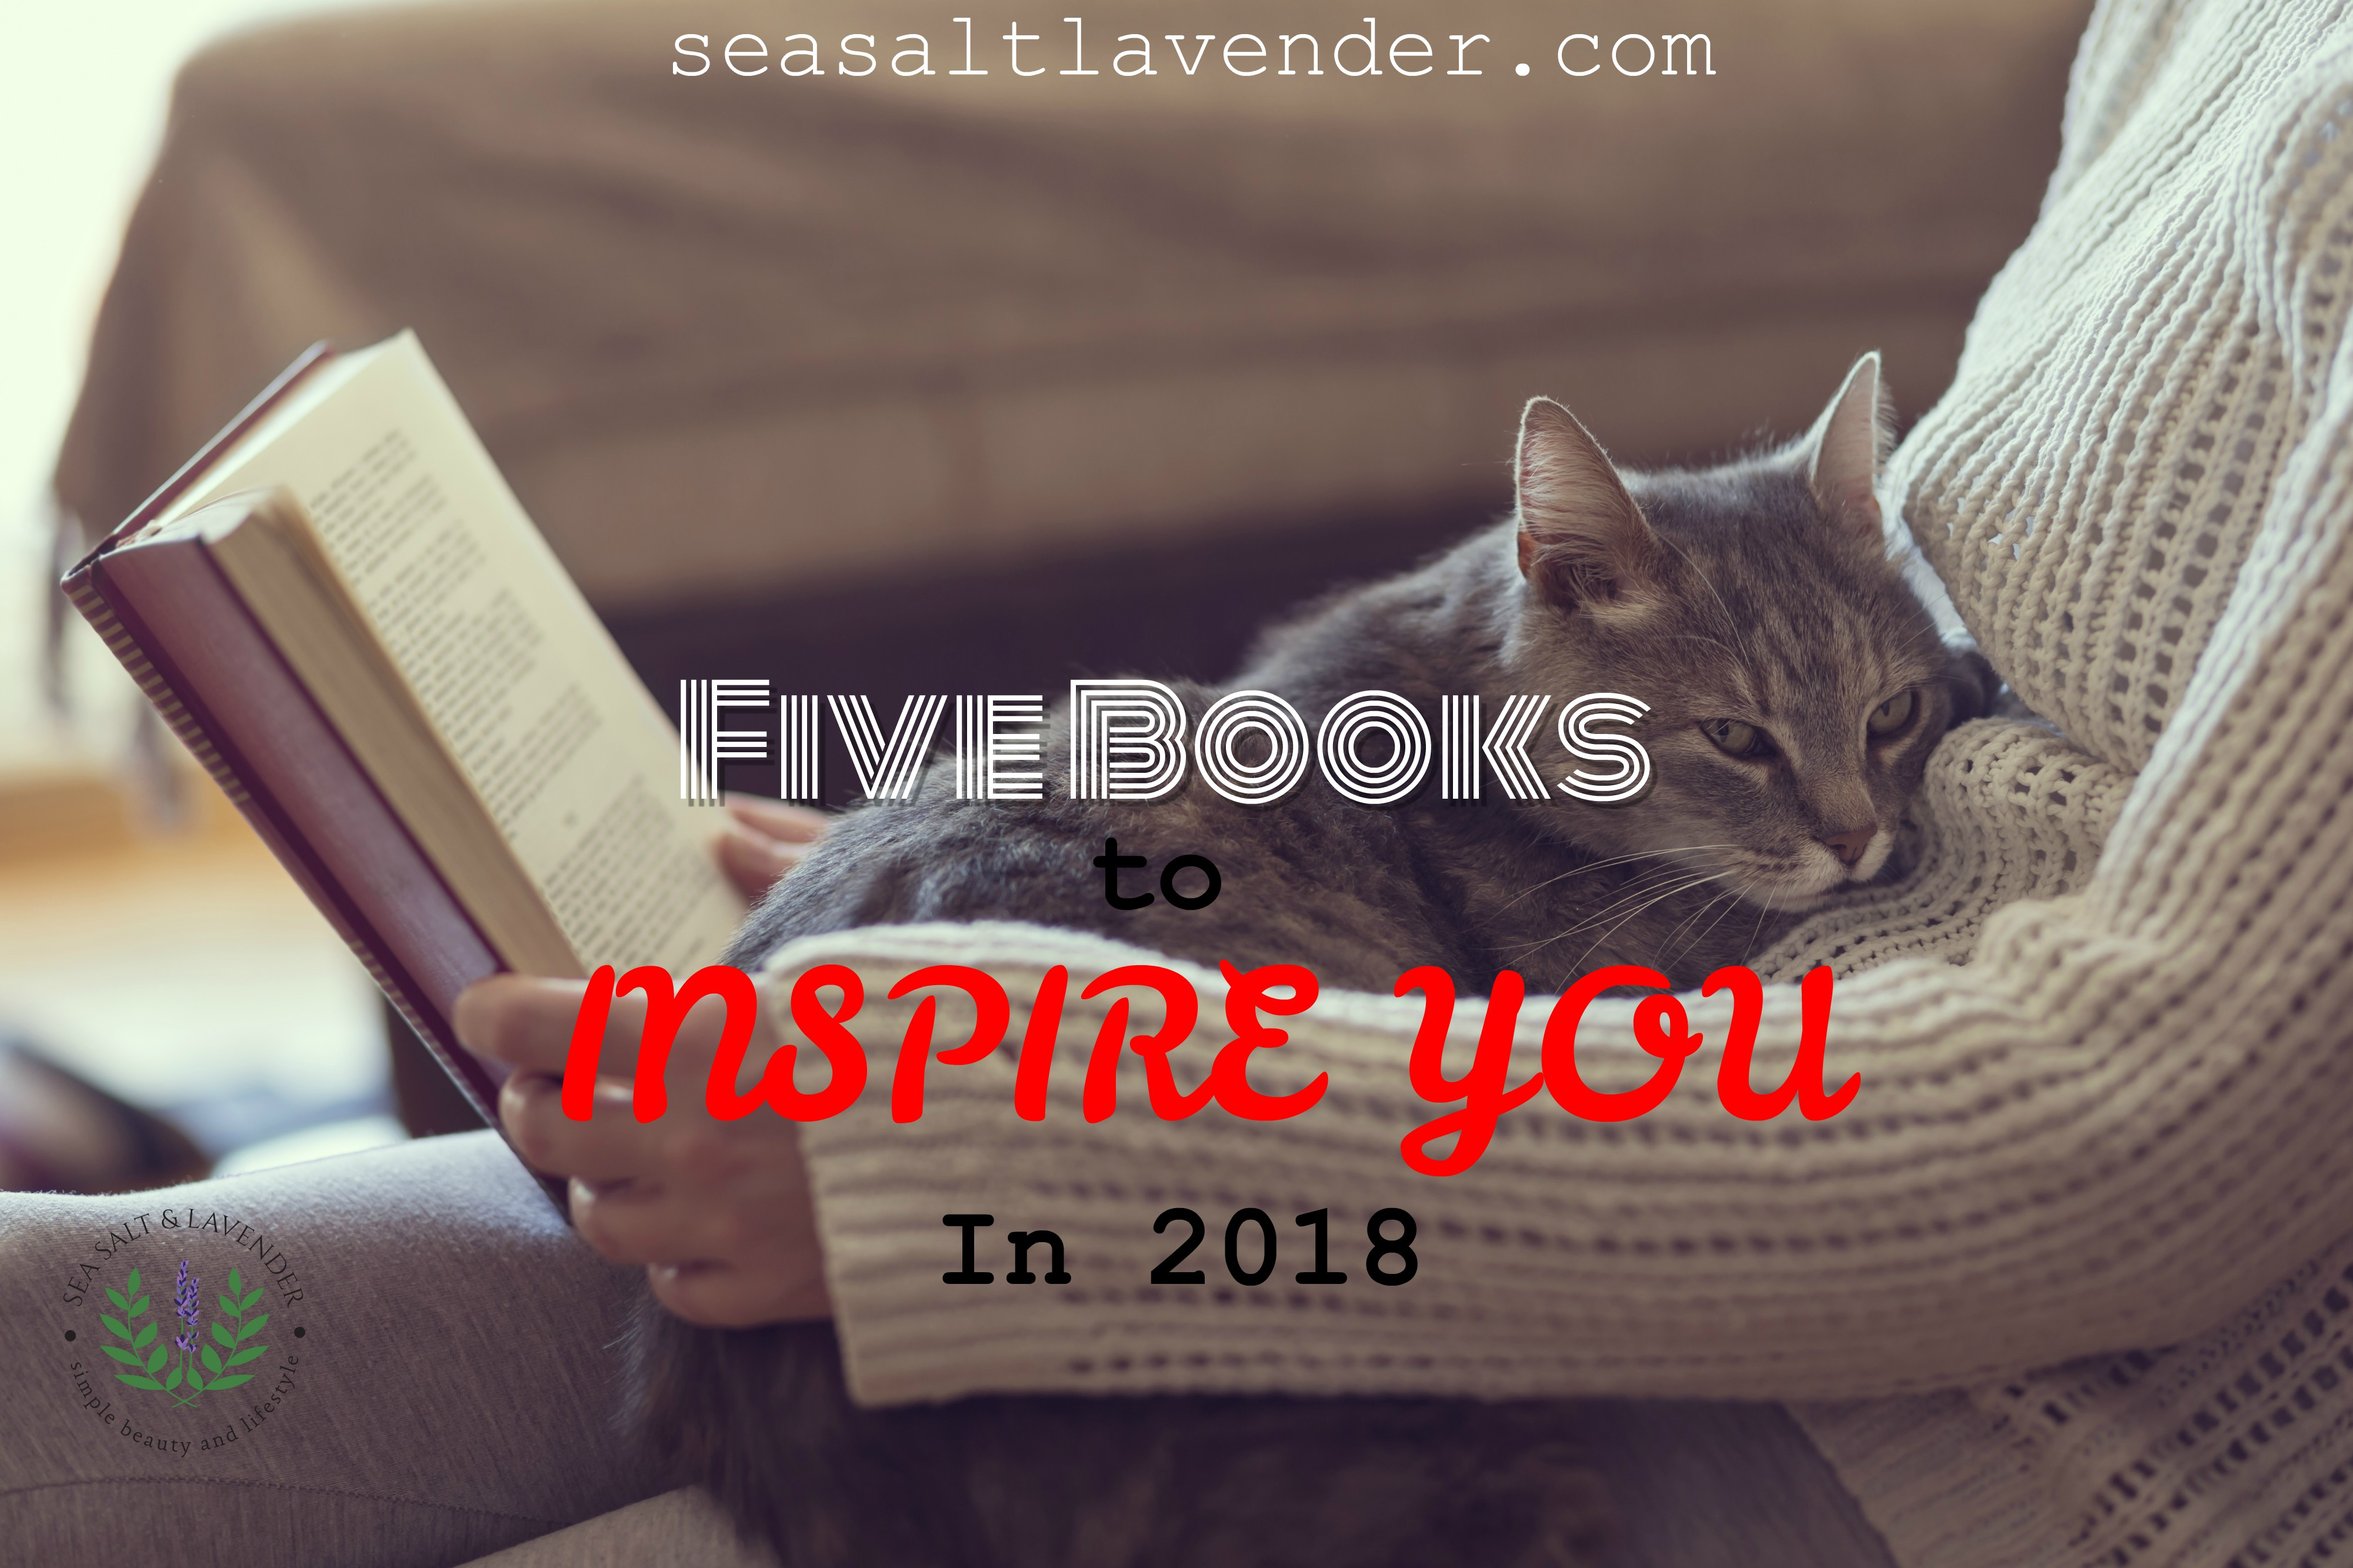 5 Books to INSPIRE You This New Year's